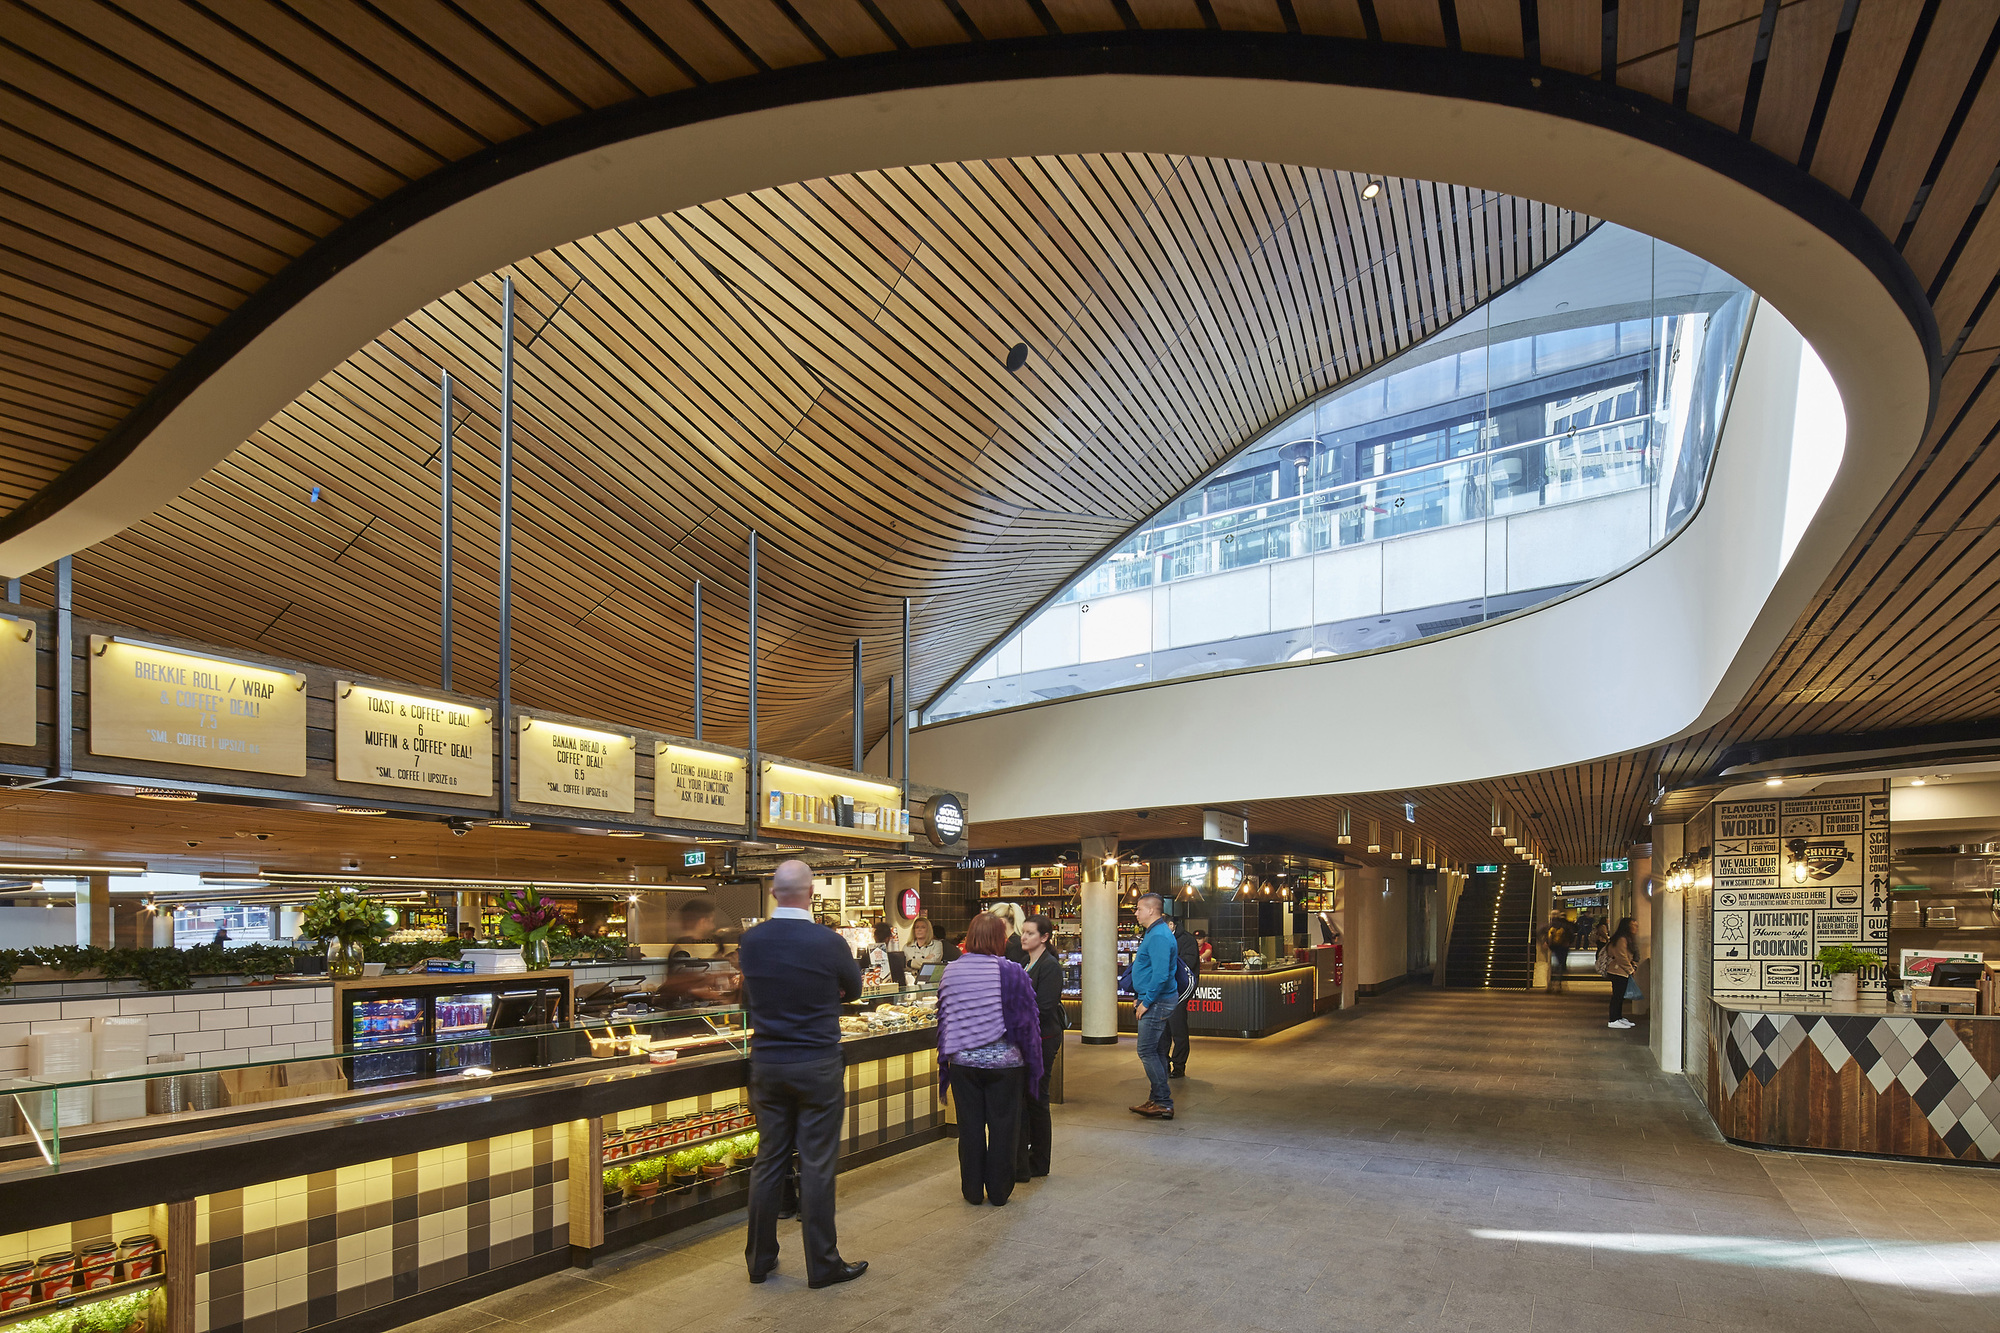 Retail Lighting Stores Sydney Mlc Centre Food Court Luchetti Krelle Archdaily